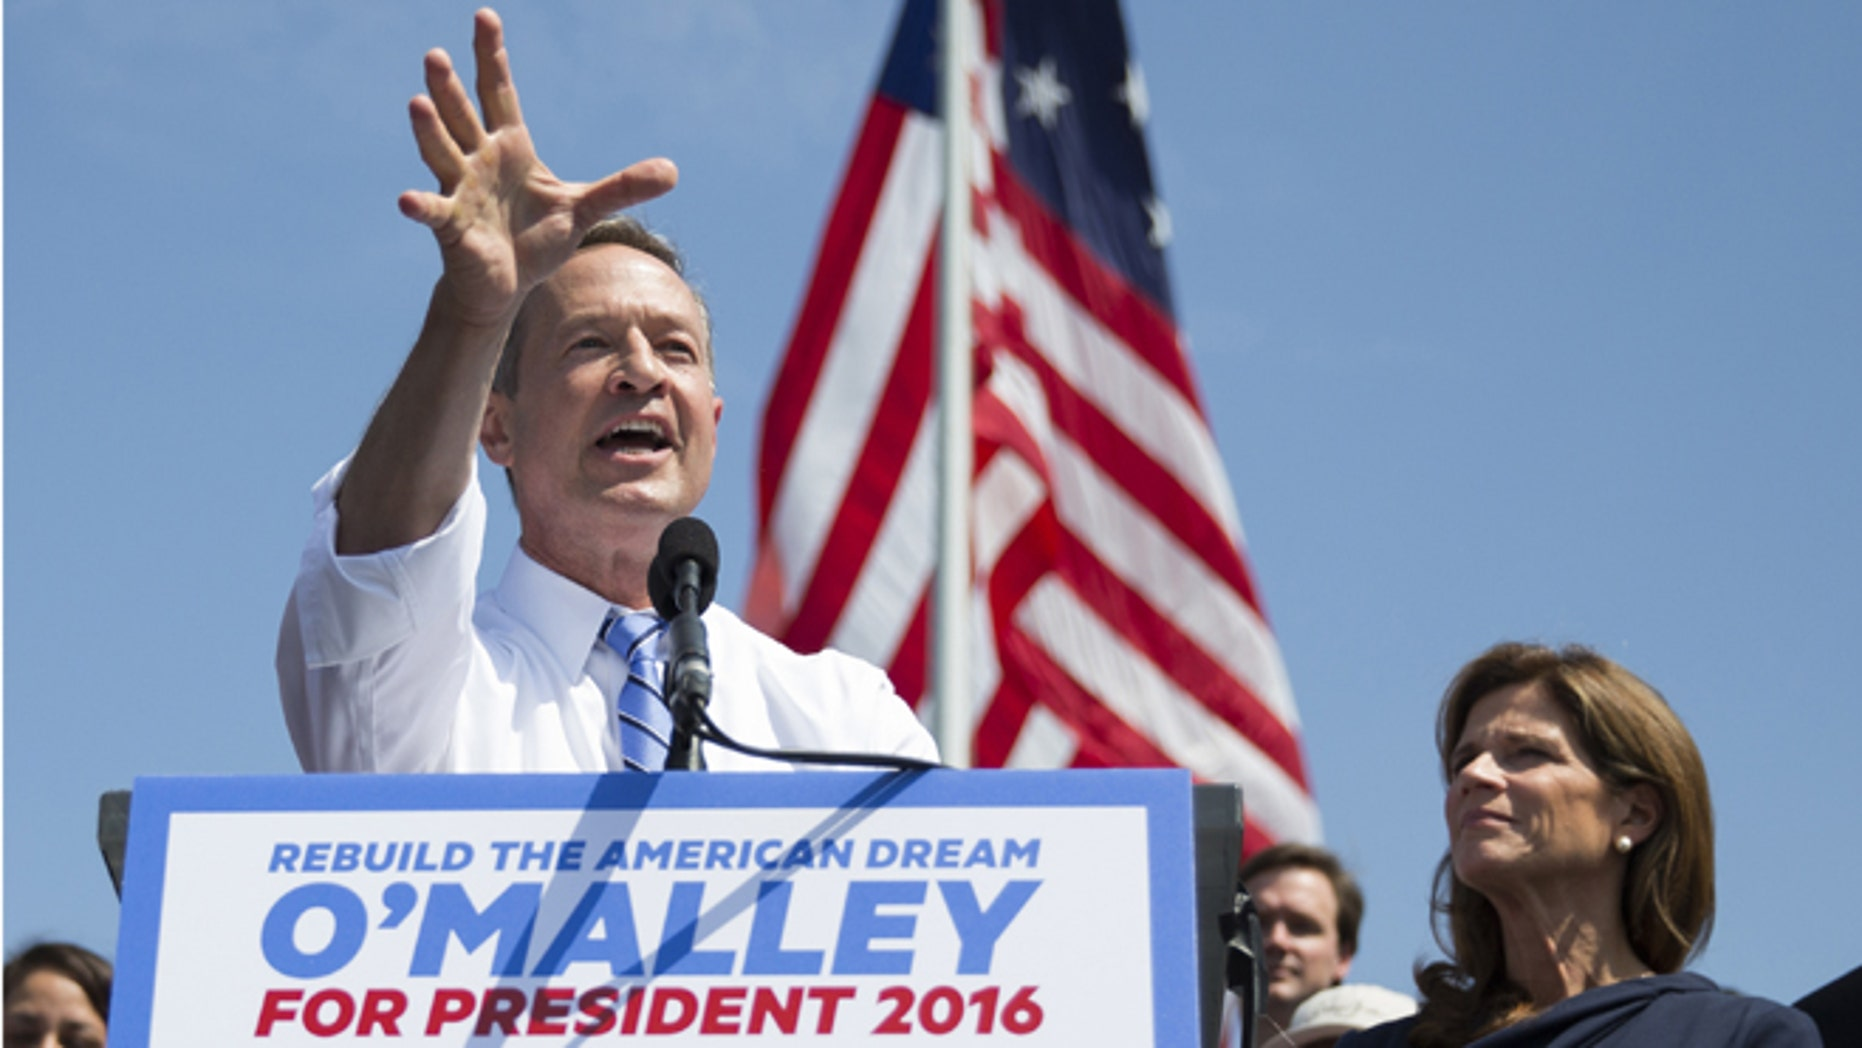 """Former Maryland Gov. Martin O'Malley speaks during an event to announce that he is entering the Democratic presidential race, on Saturday, May 30, 2015, in Baltimore, as his wife Katie, right, looks on.   O'Malley joined the Democratic presidential race with a longshot challenge to Hillary Rodham Clinton for the 2016 nomination.  """"I'm running for you,"""" he told a crowd of about 1,000 people at Federal Hill Park in Baltimore, where he served as mayor before two terms as governor.  (AP Photo/Evan Vucci)"""